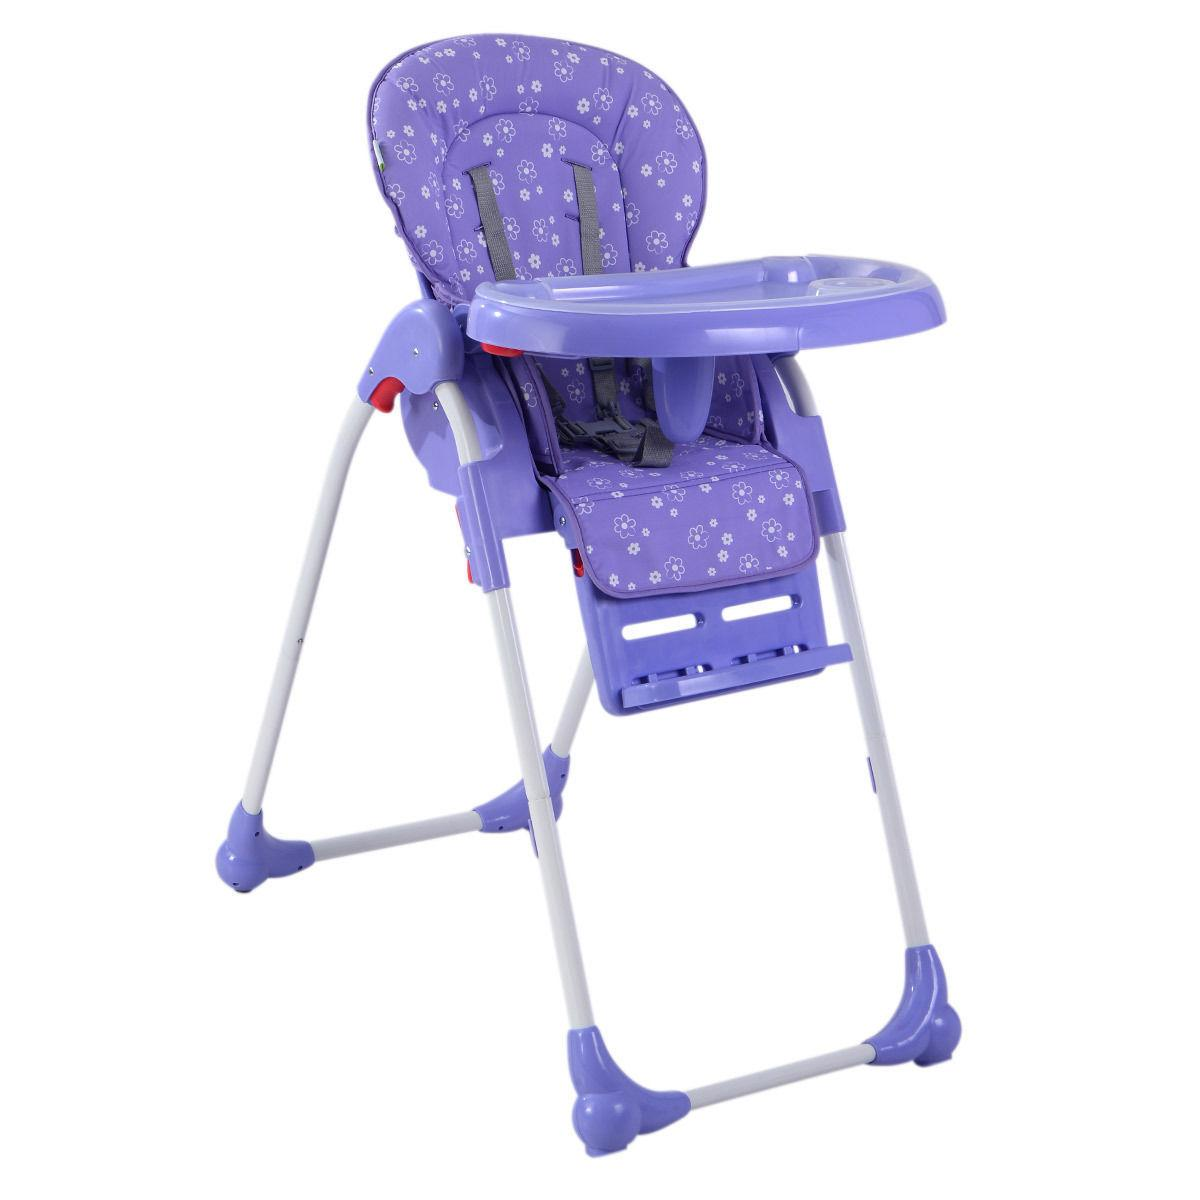 Adjustable Infant Seat